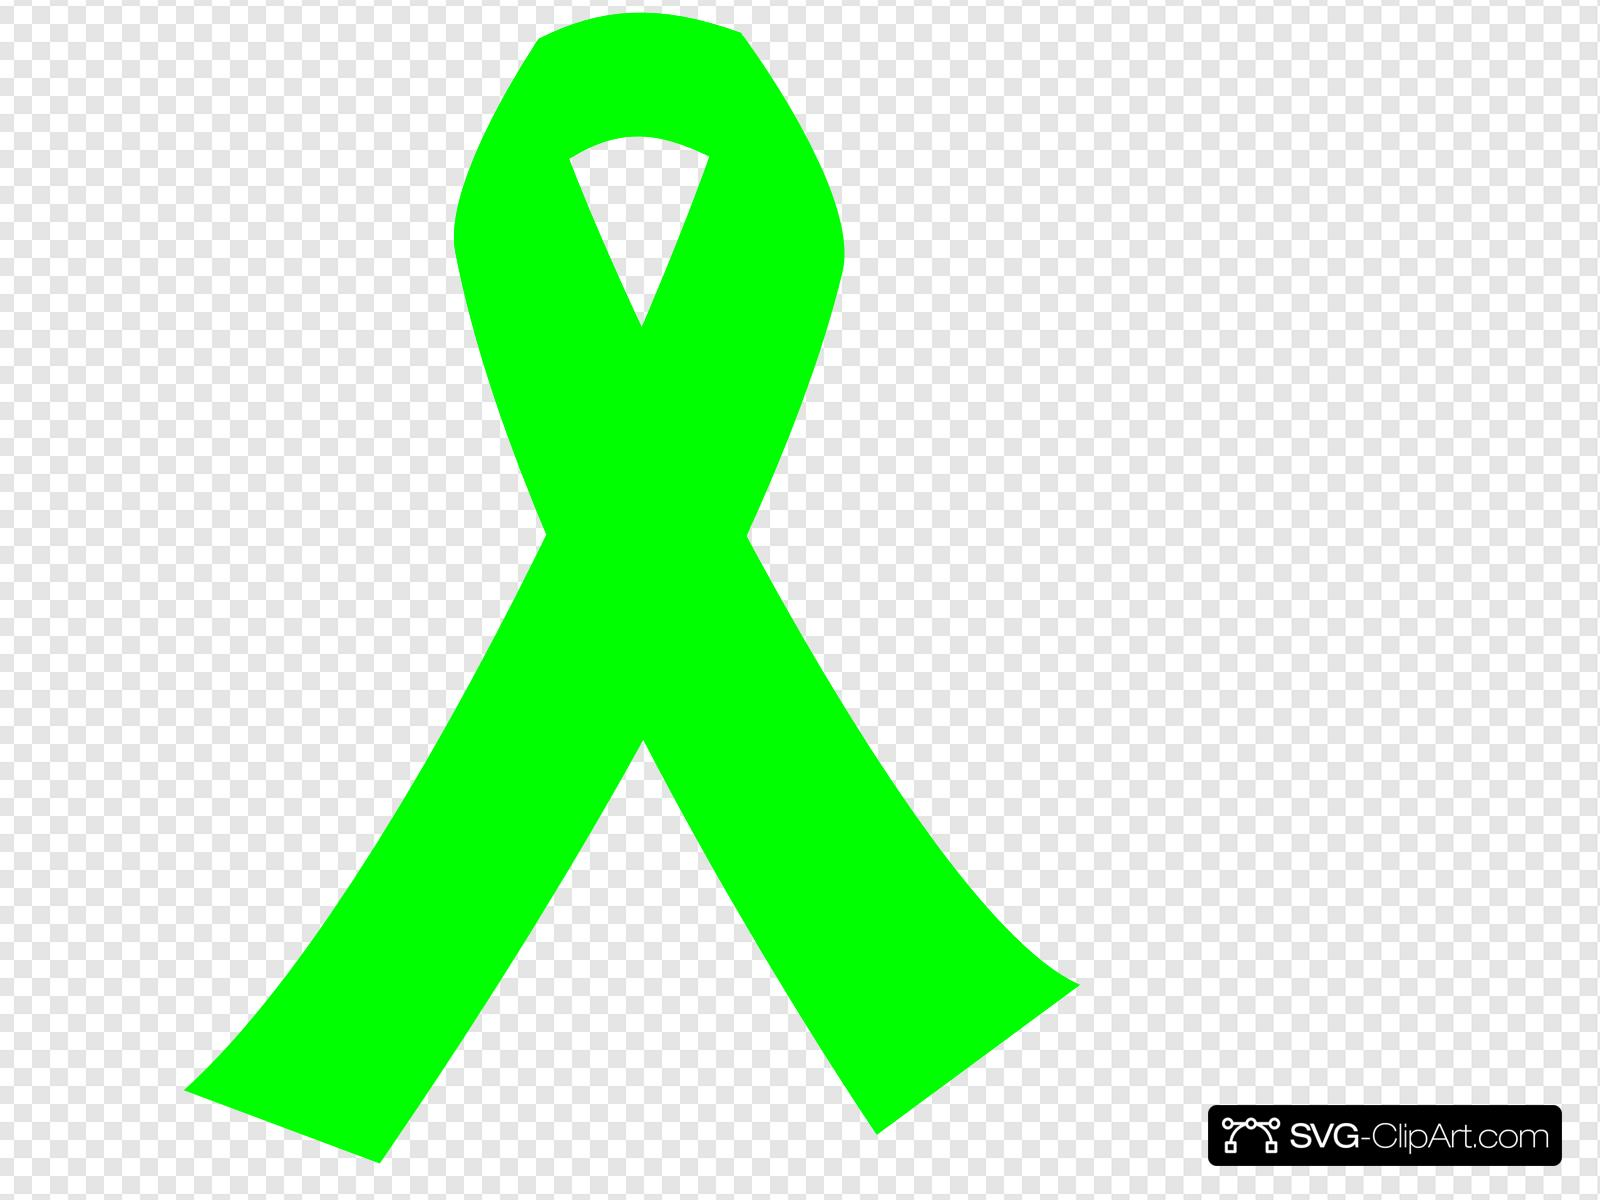 Lime Green Cancer Ribbon Clip art, Icon and SVG.